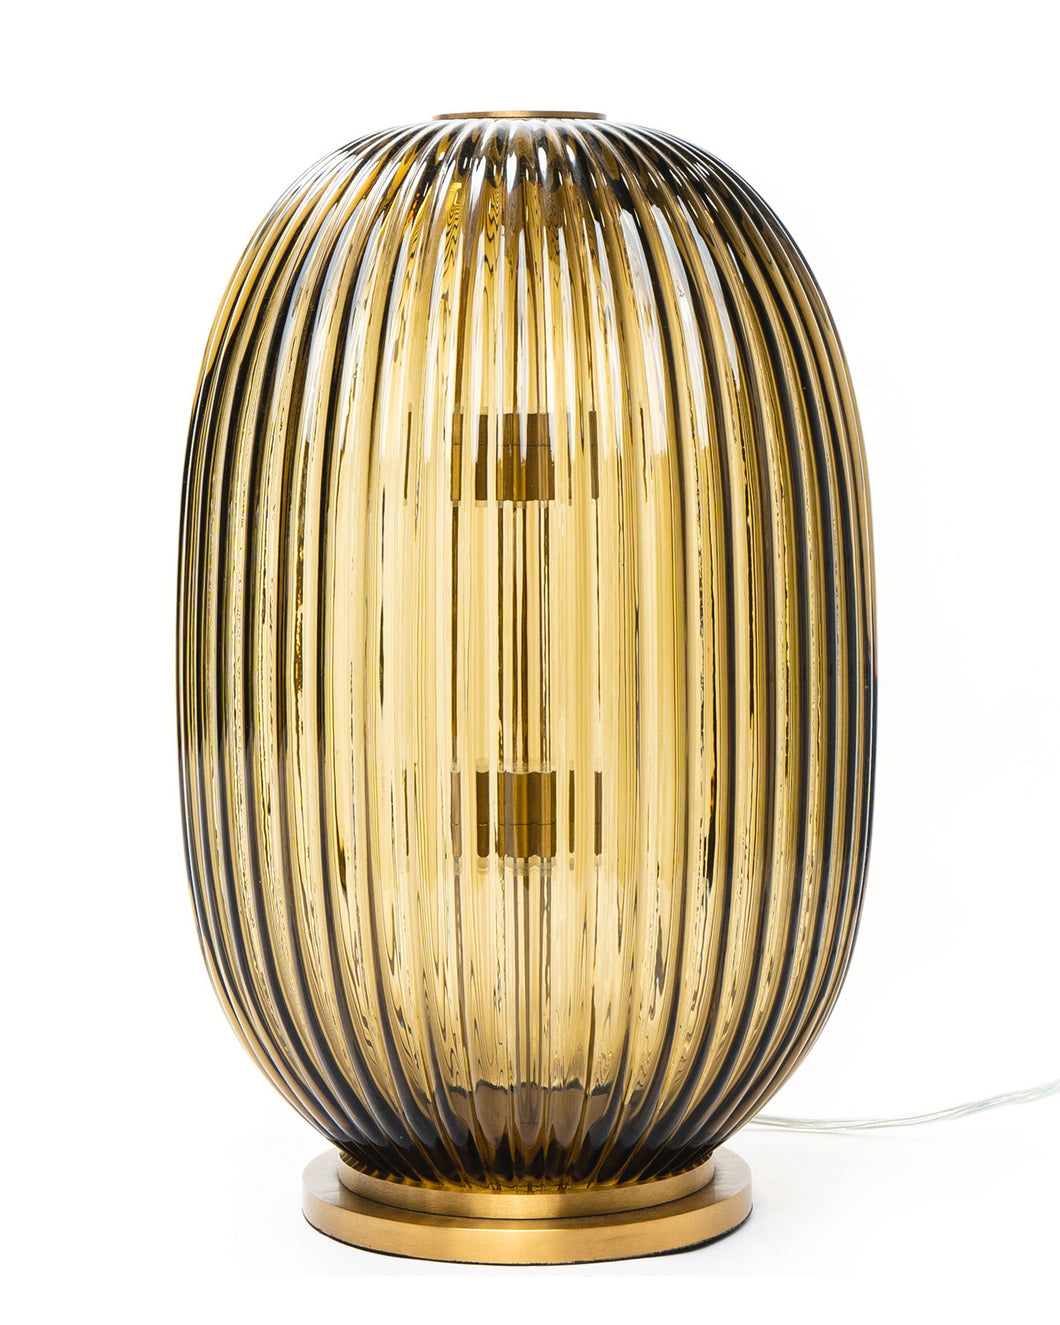 George Flavin Hand-Blown Decorative Lamp